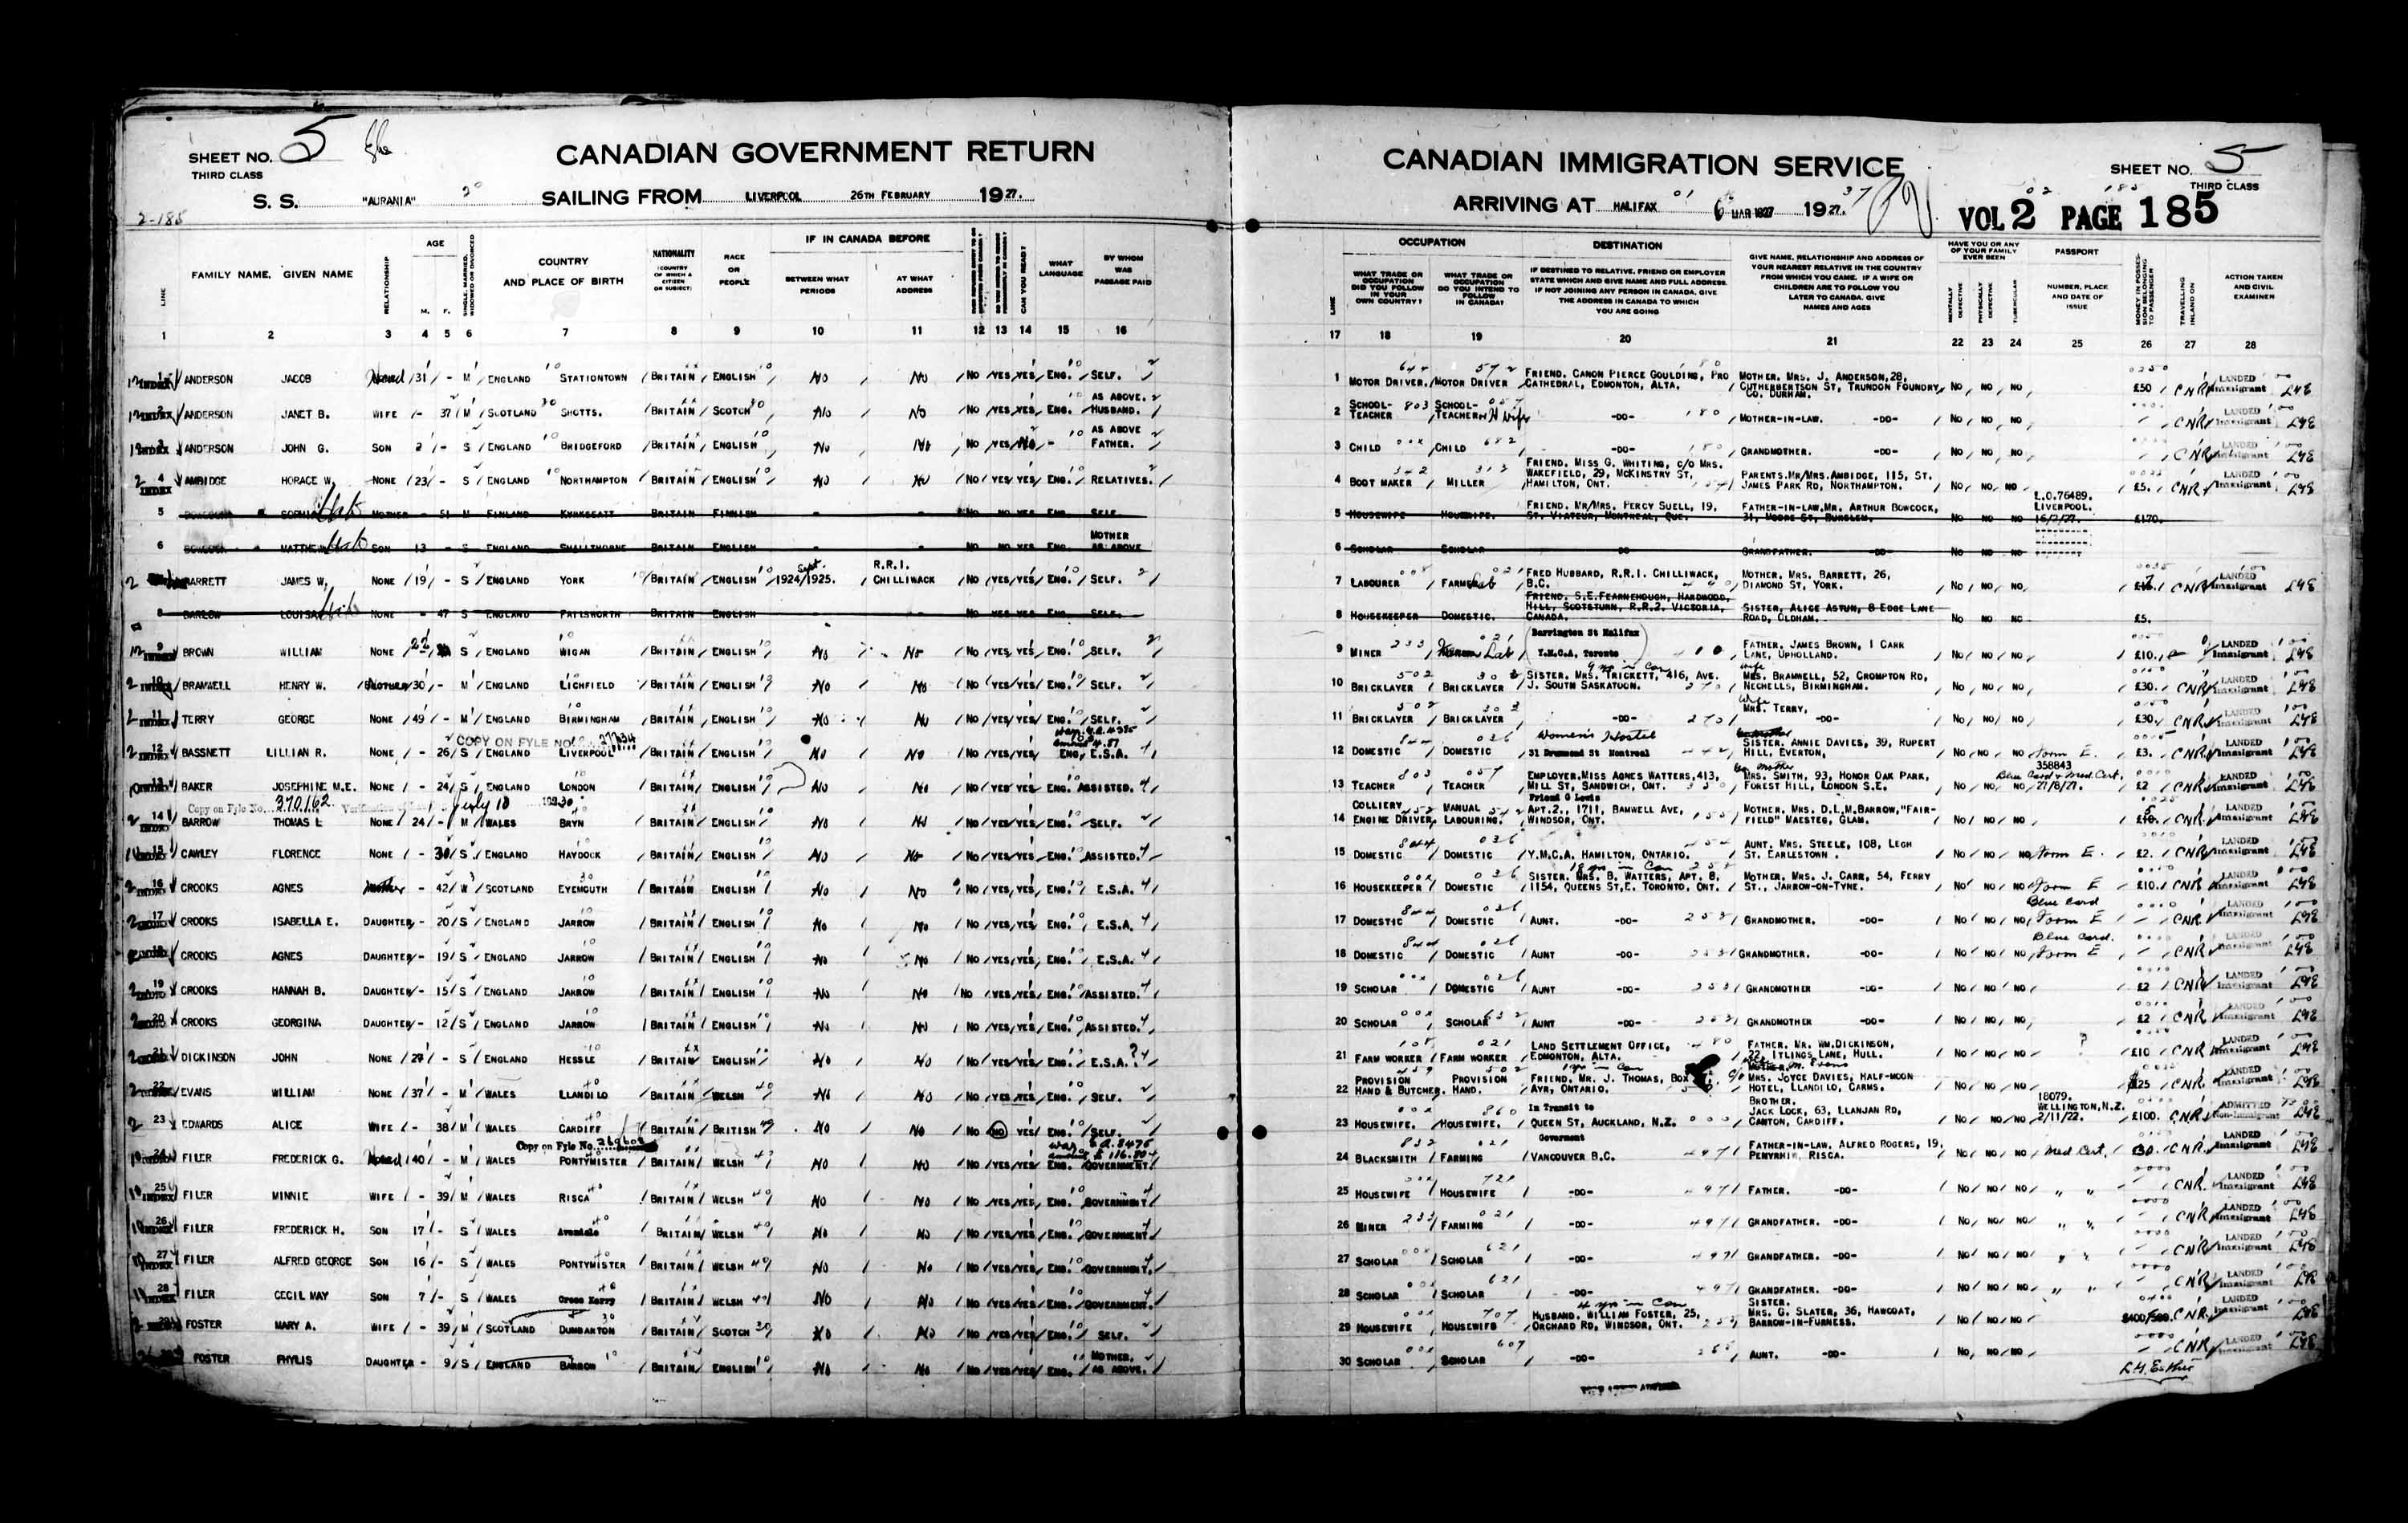 Title: Passenger Lists: Halifax (1925-1935) - Mikan Number: 134853 - Microform: t-14807